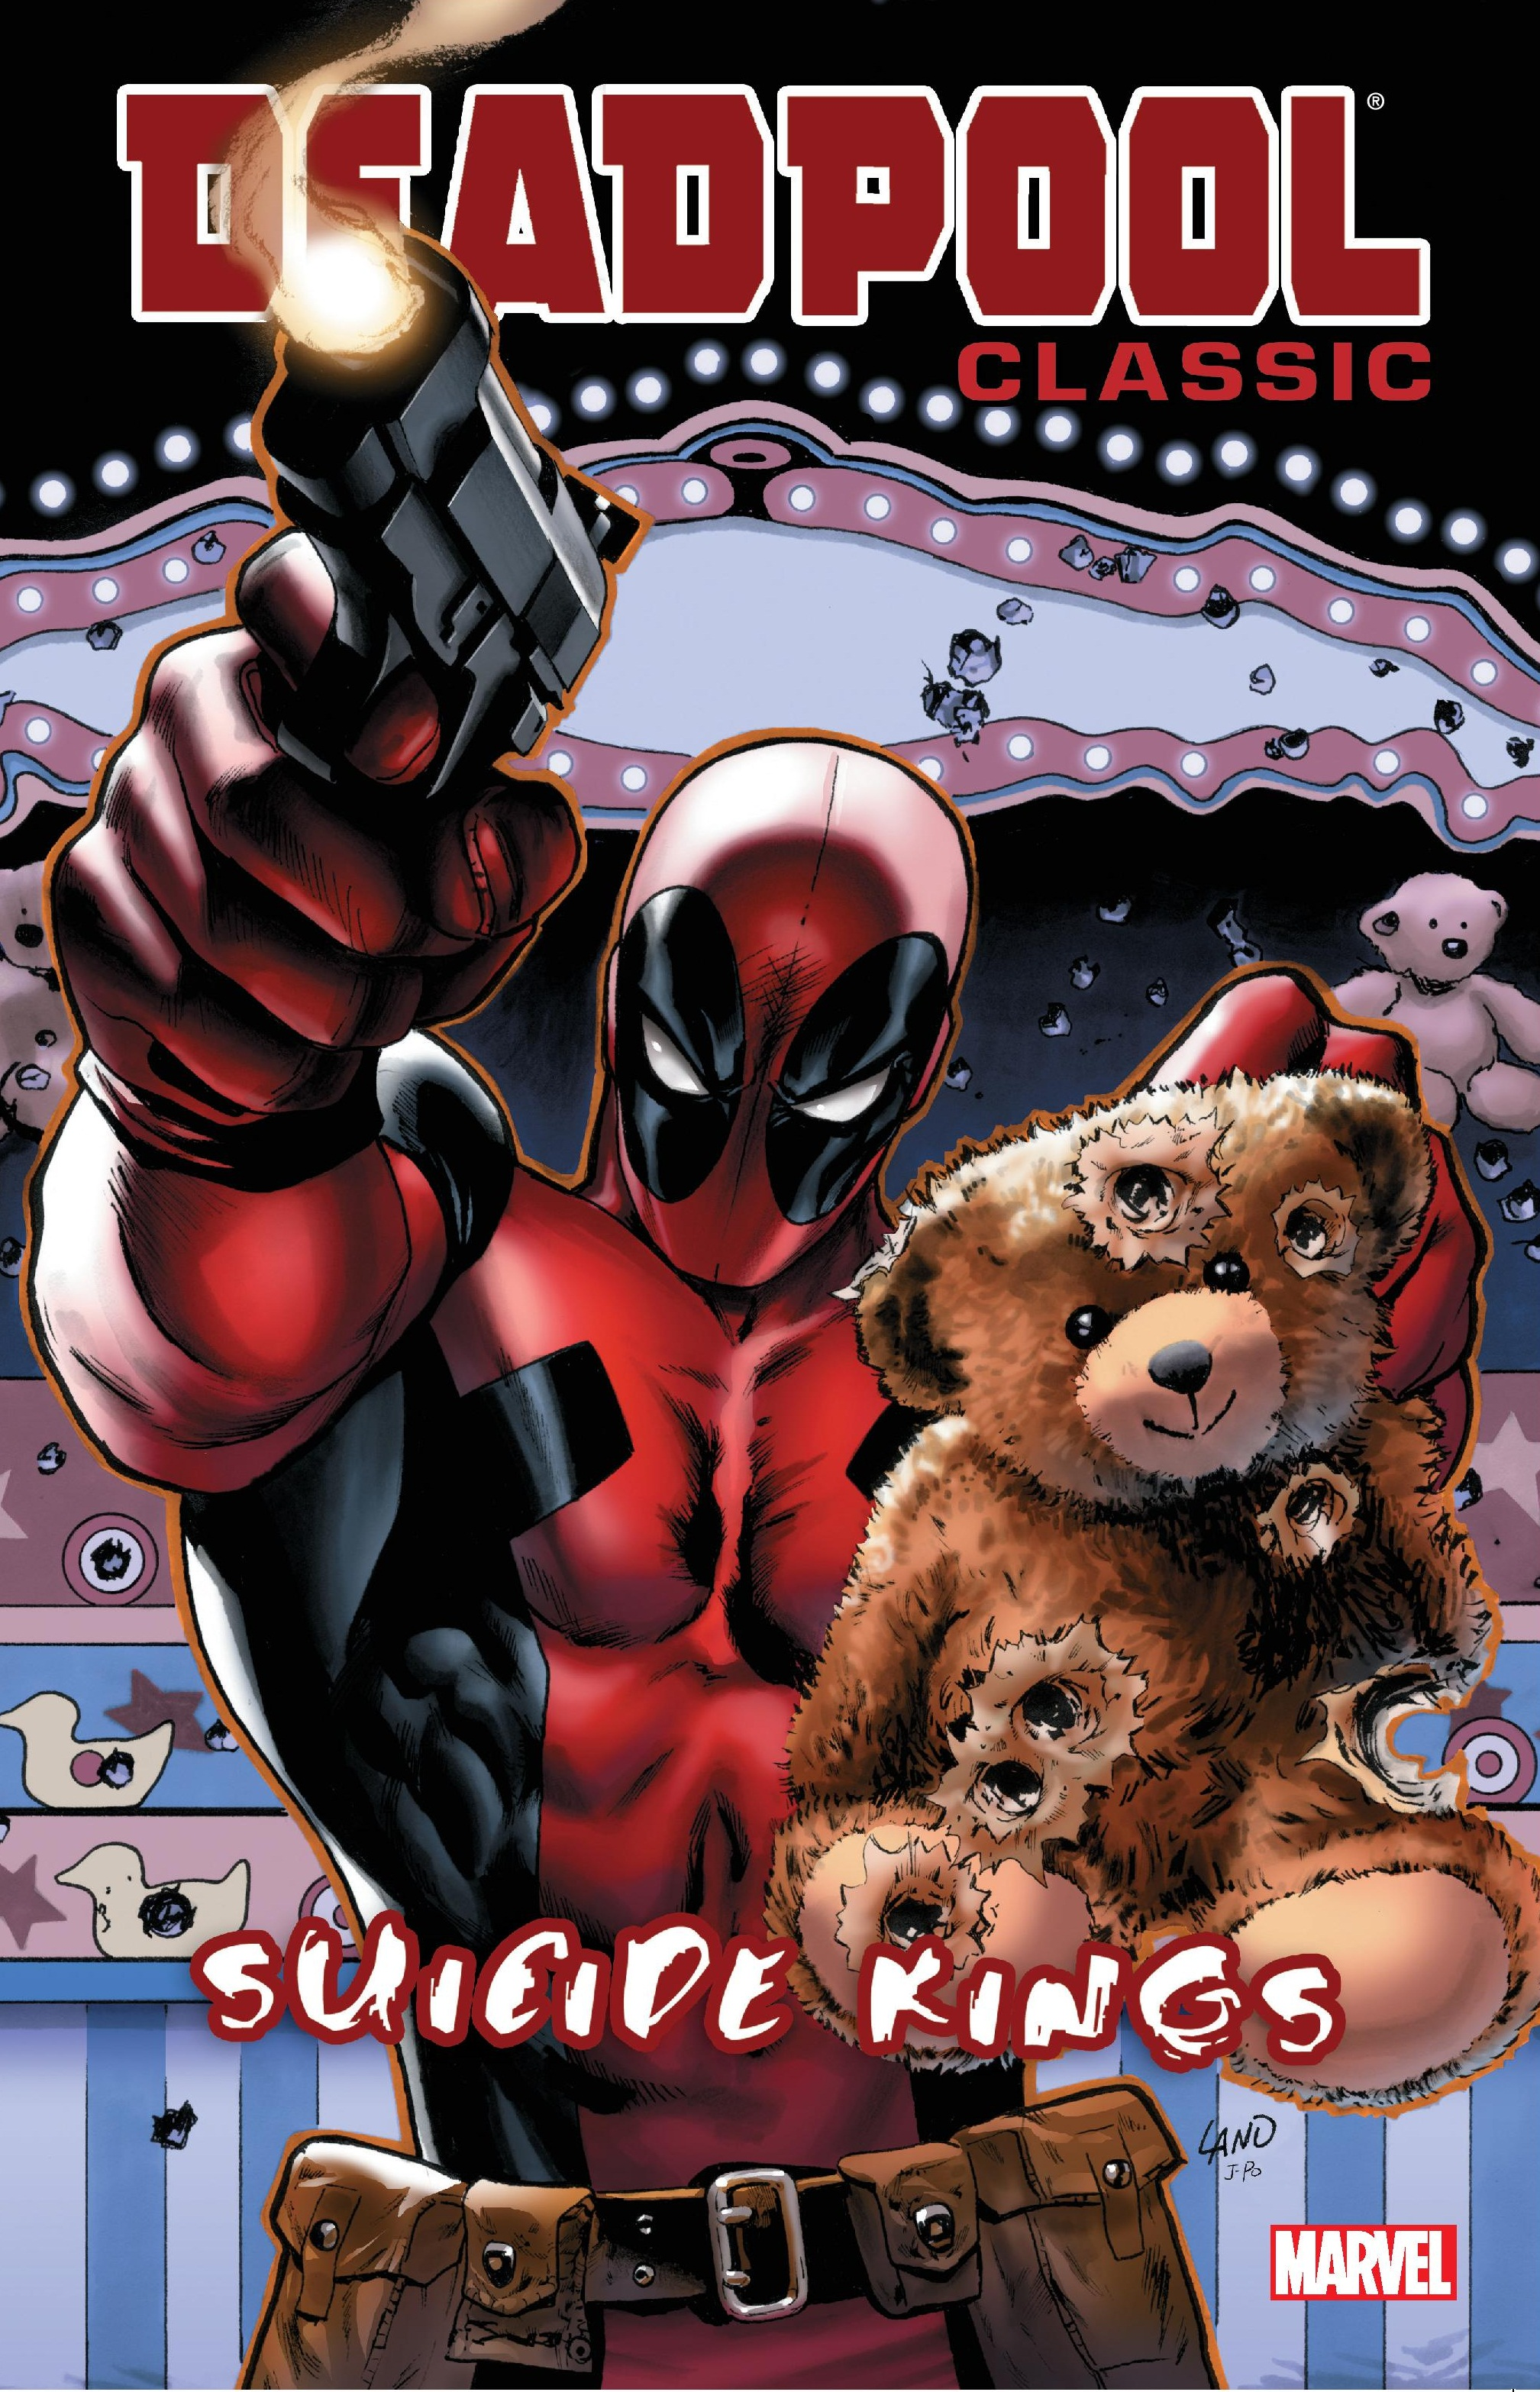 Deadpool Classic Vol. 14: Suicide Kings (Trade Paperback)